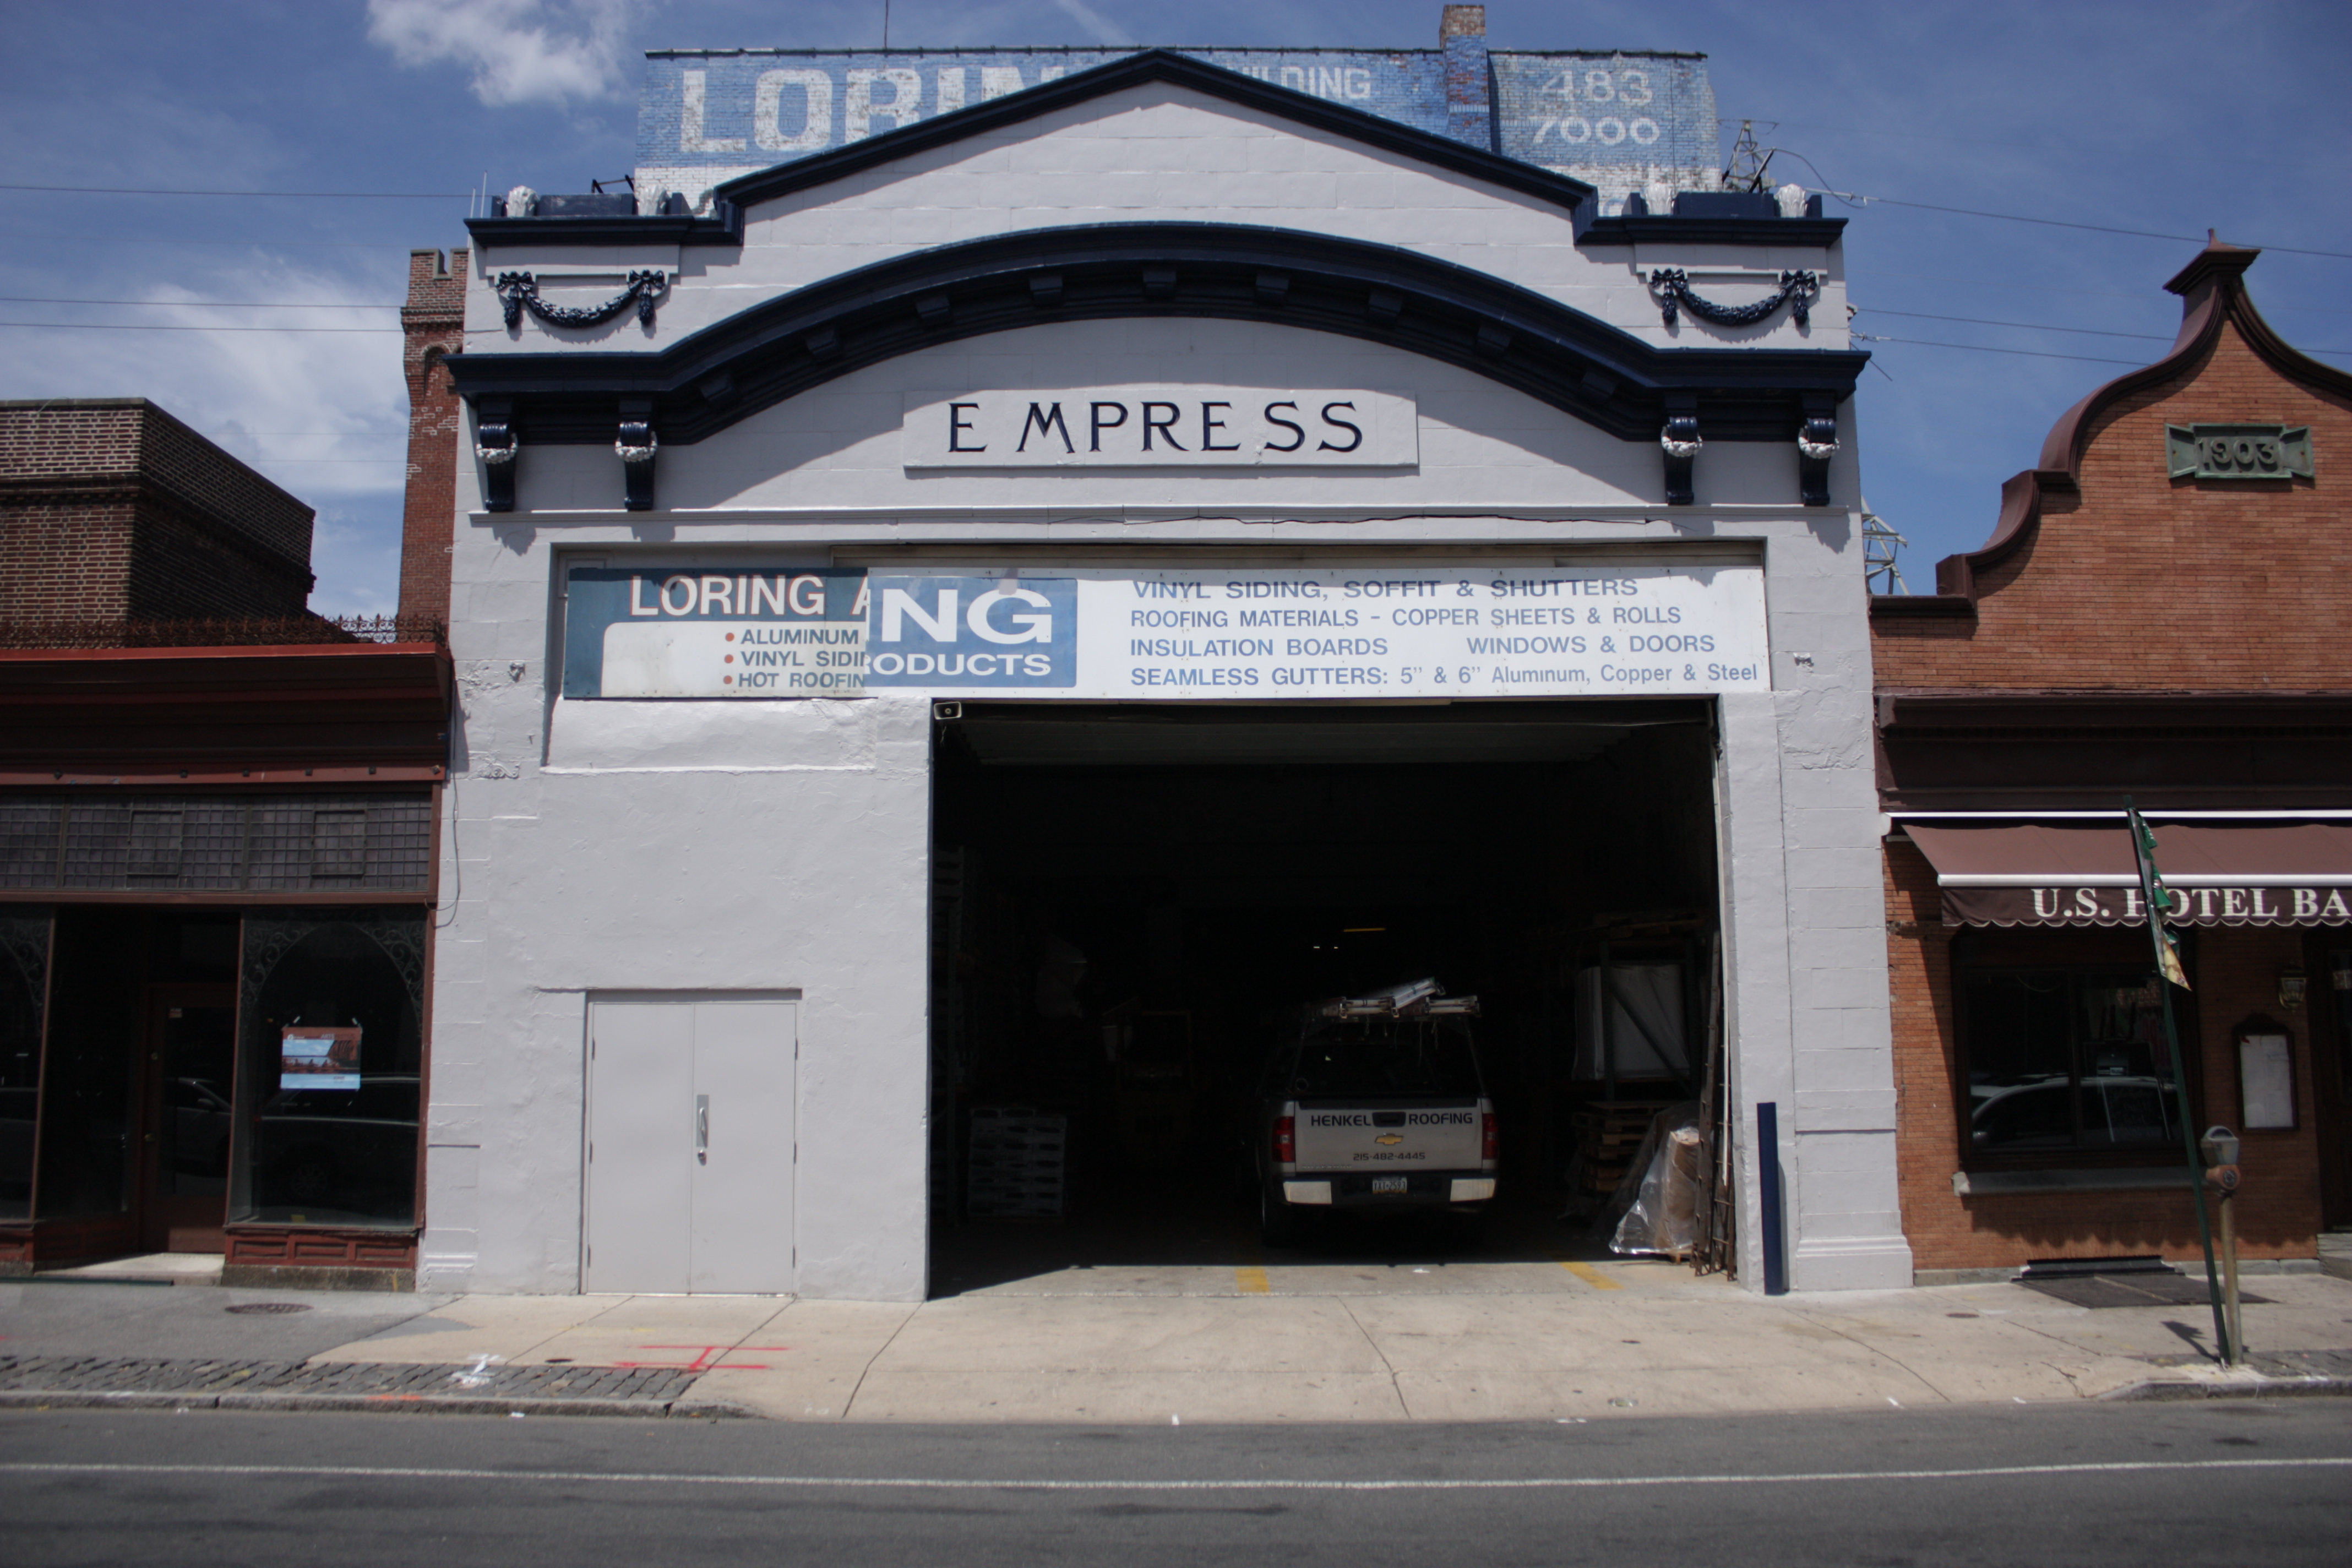 The exterior of the Loring Building Products warehouse, the former Empress Theater, on Main Street in Manayunk. | Photo: Philip Jablon